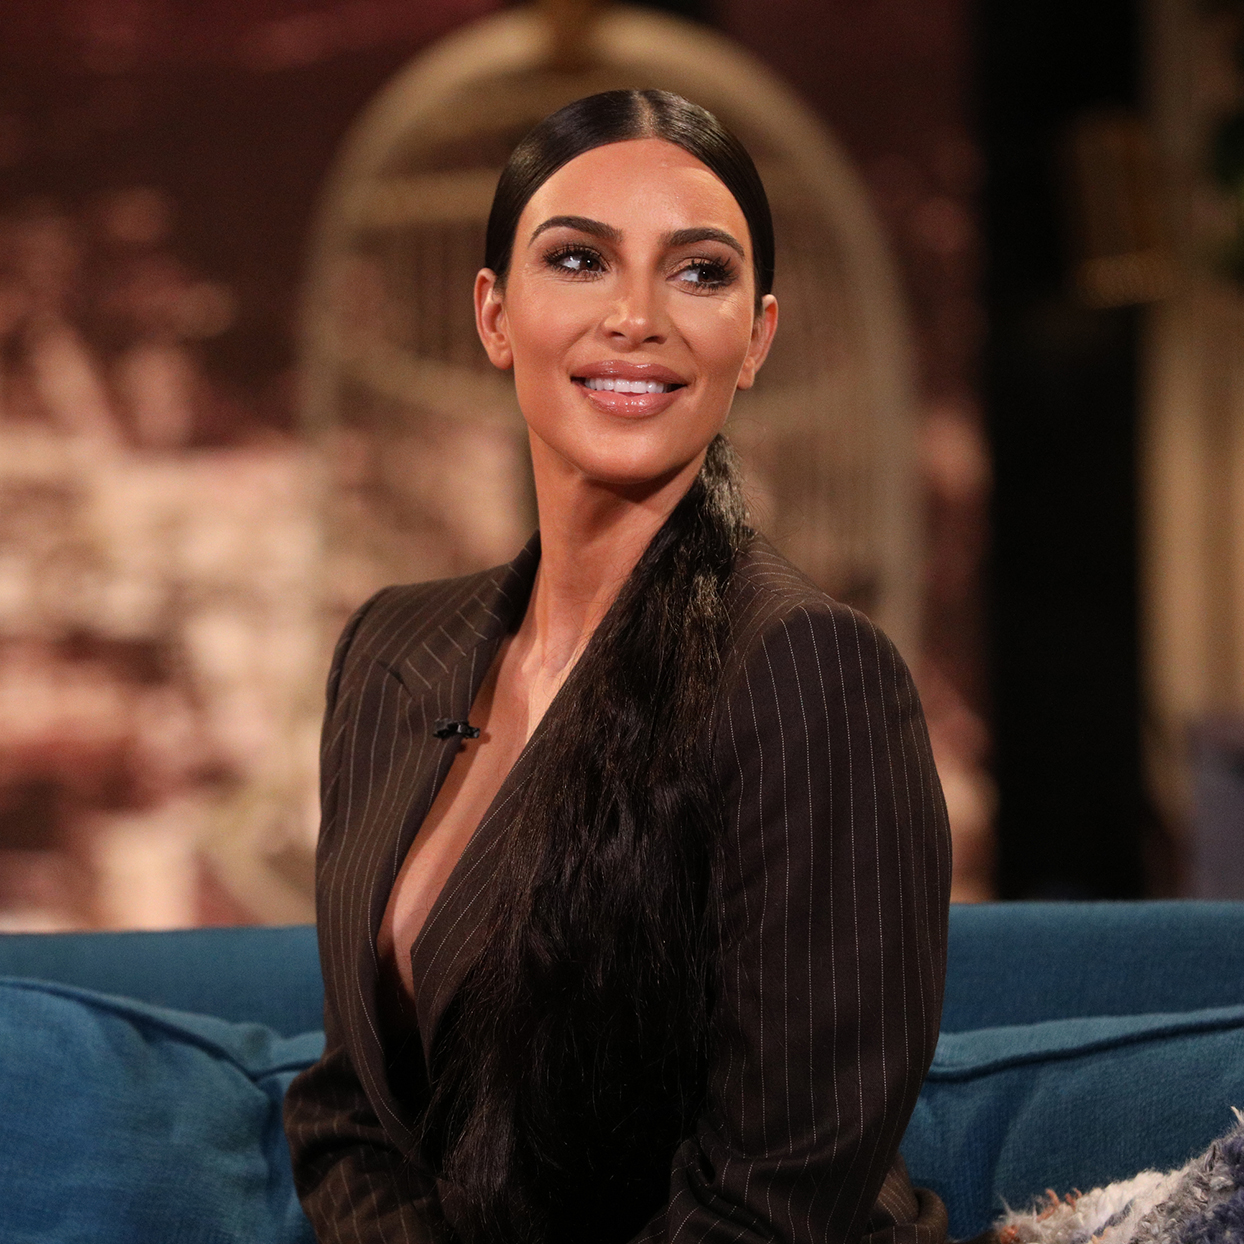 Kim Kardashian Likes to Add This Unique Superfood to Her Smoothie